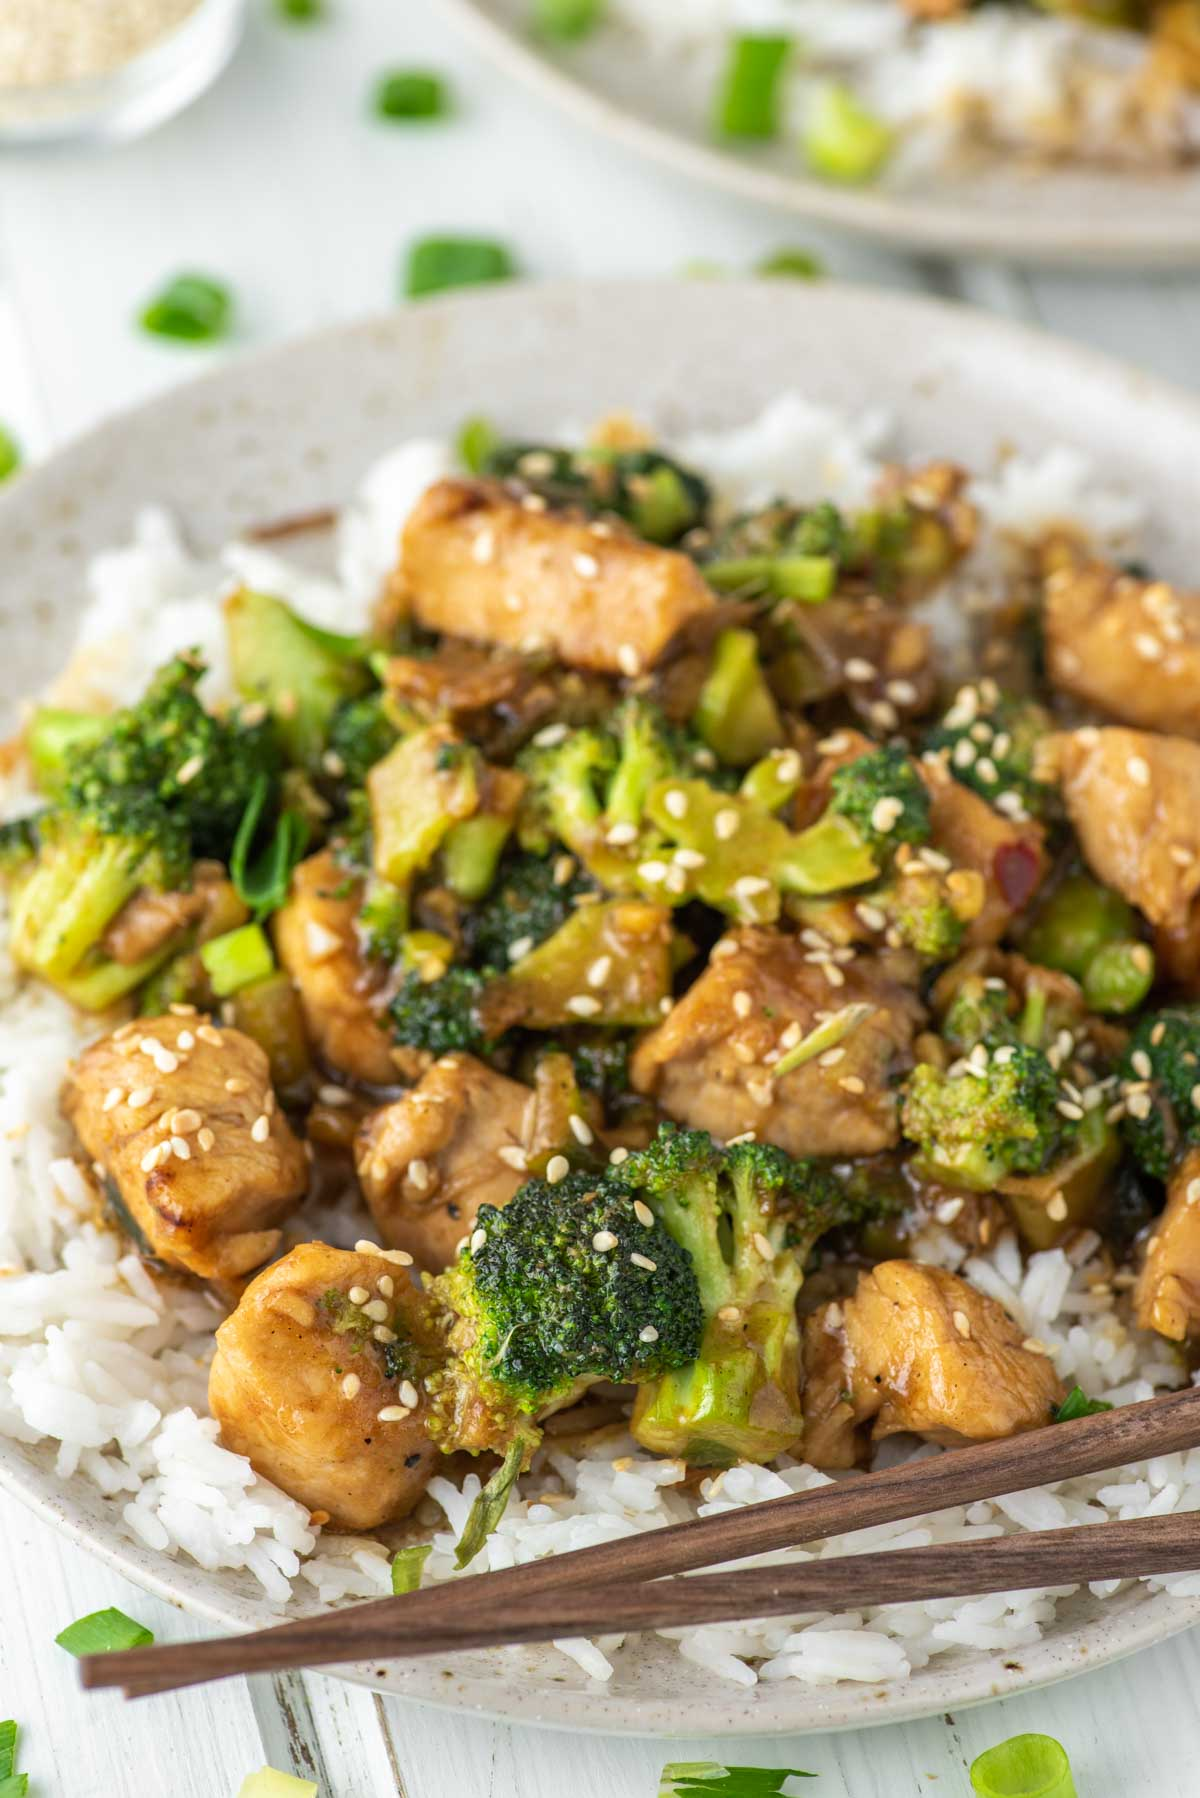 close-up of chicken and broccoli stir fry with rice on speckled plate